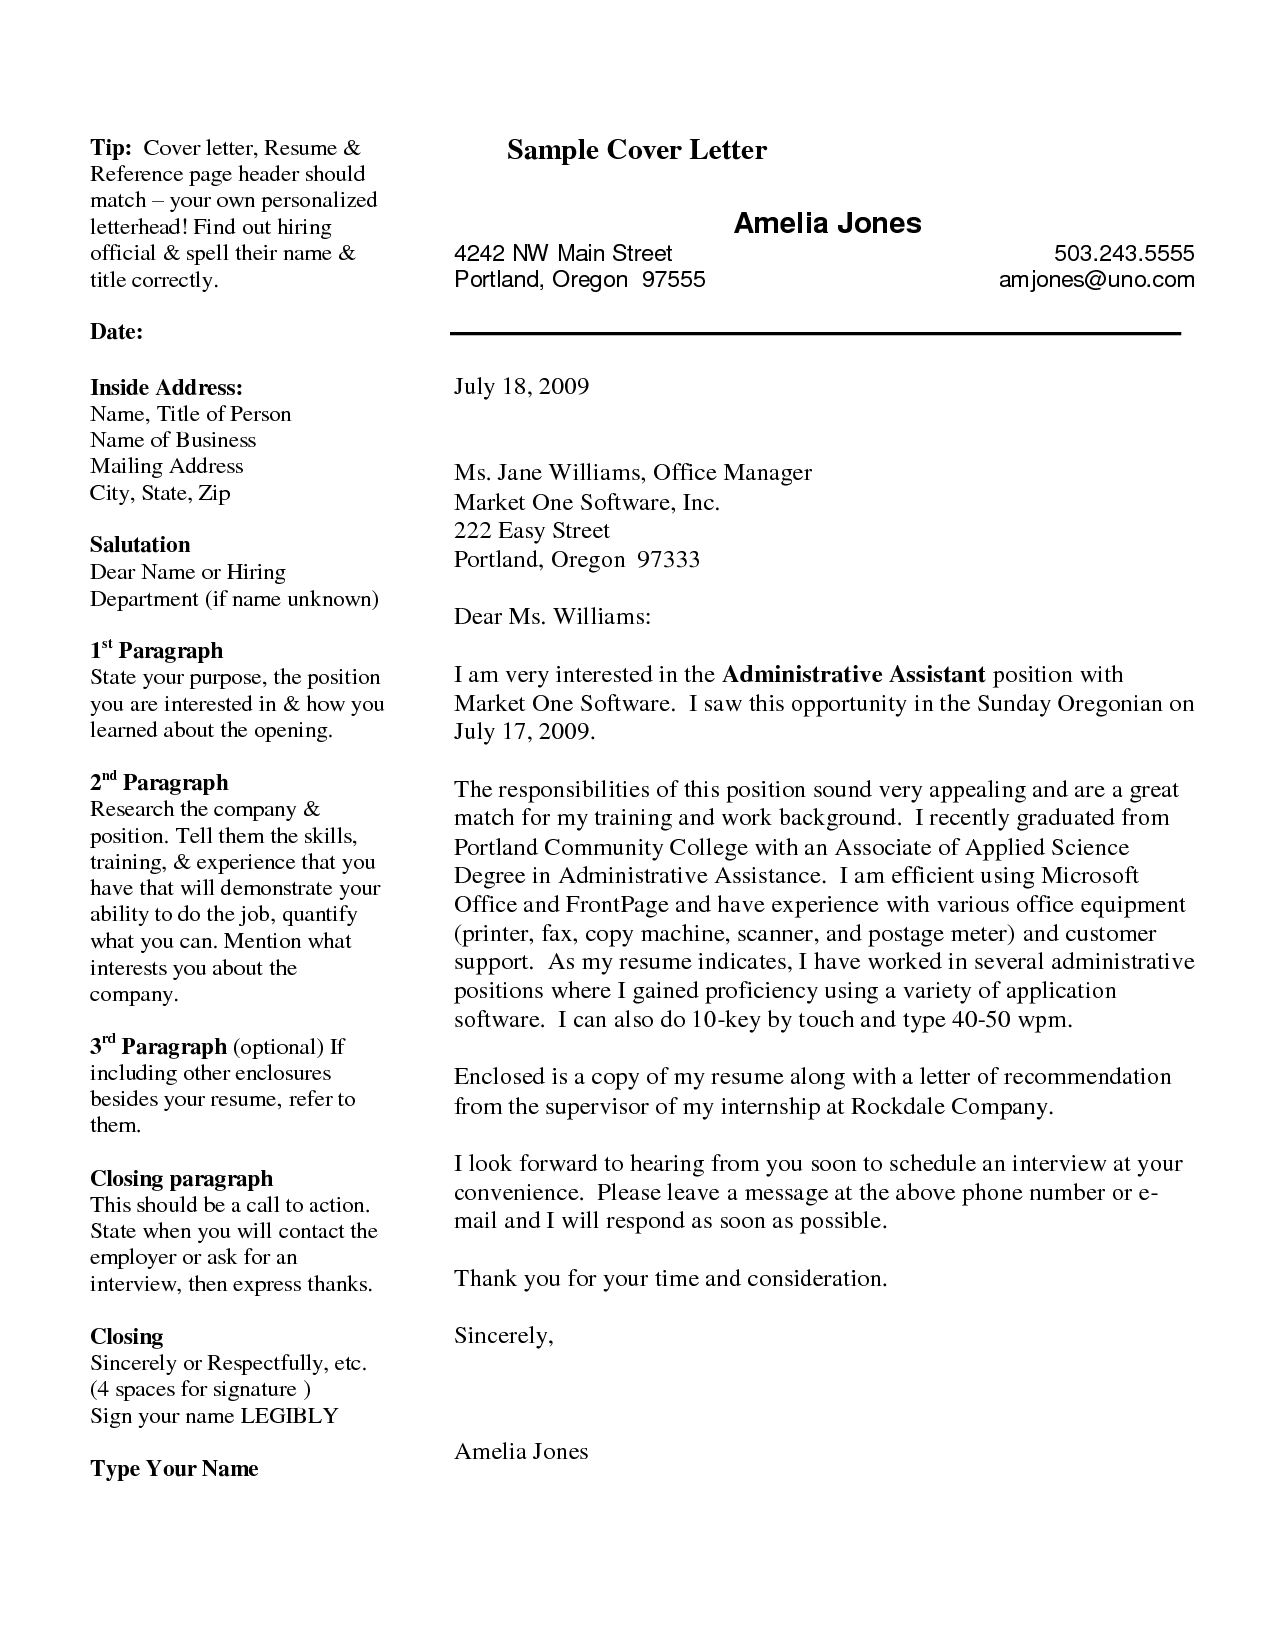 professional resume cover letter samplesprofessional resume cover - Resume With References Template